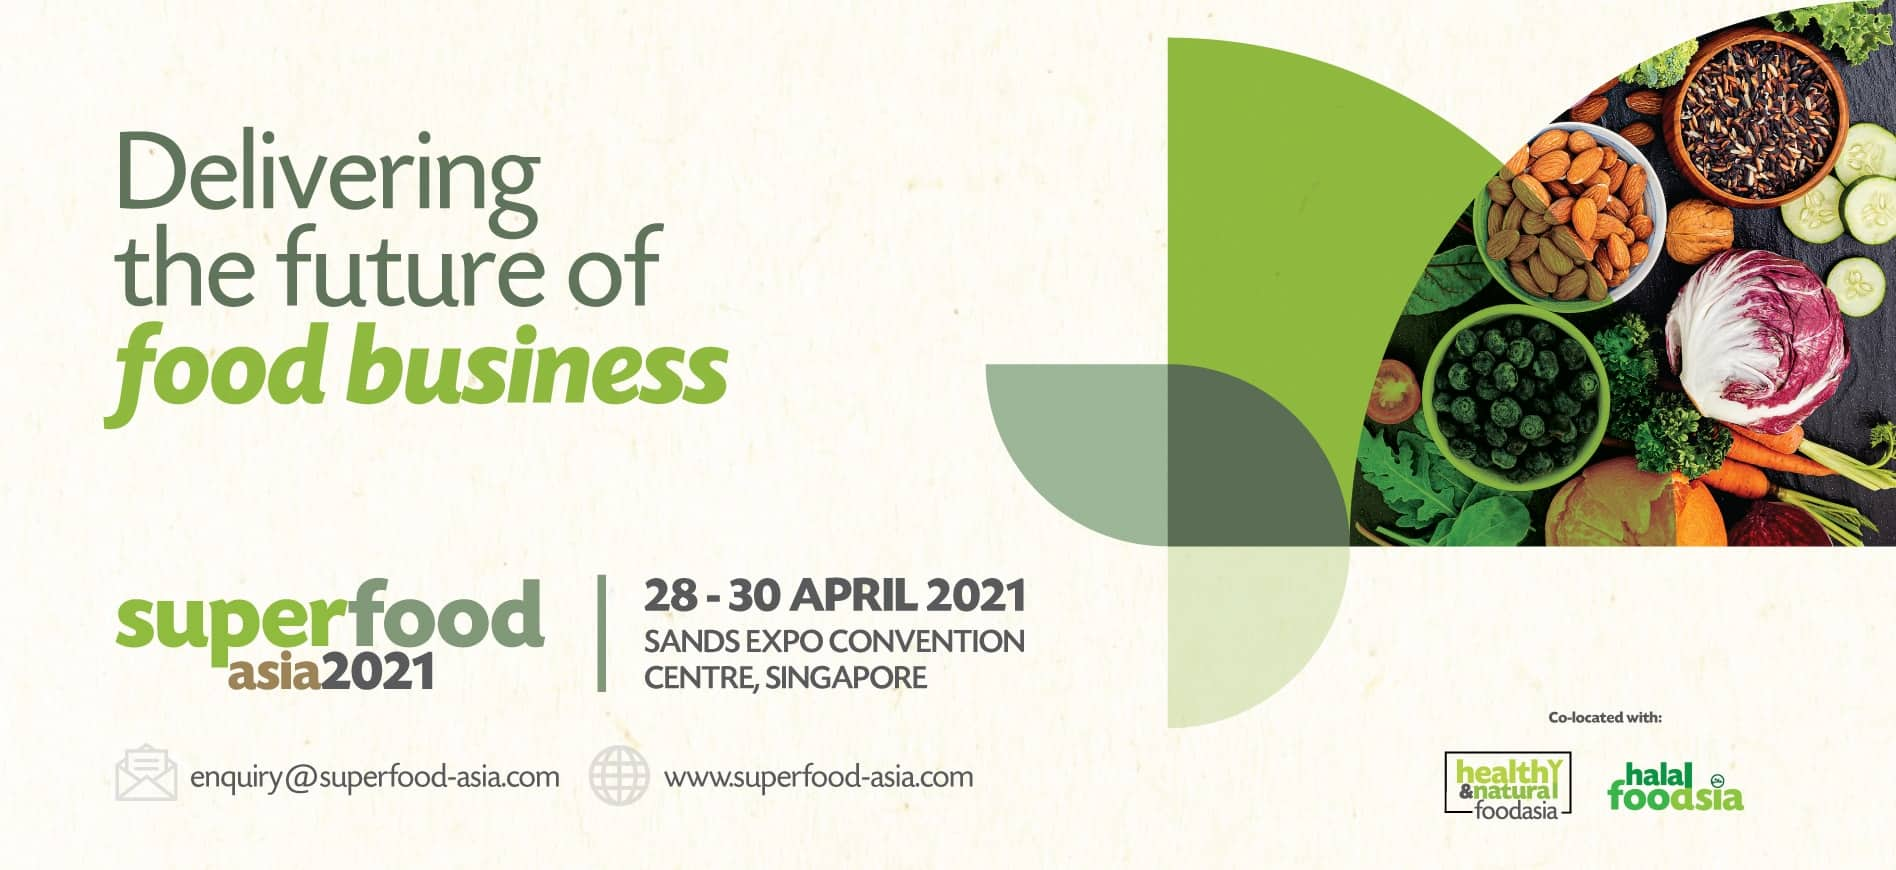 Malaysian International Food & Beverage Trade Fair (MIFB